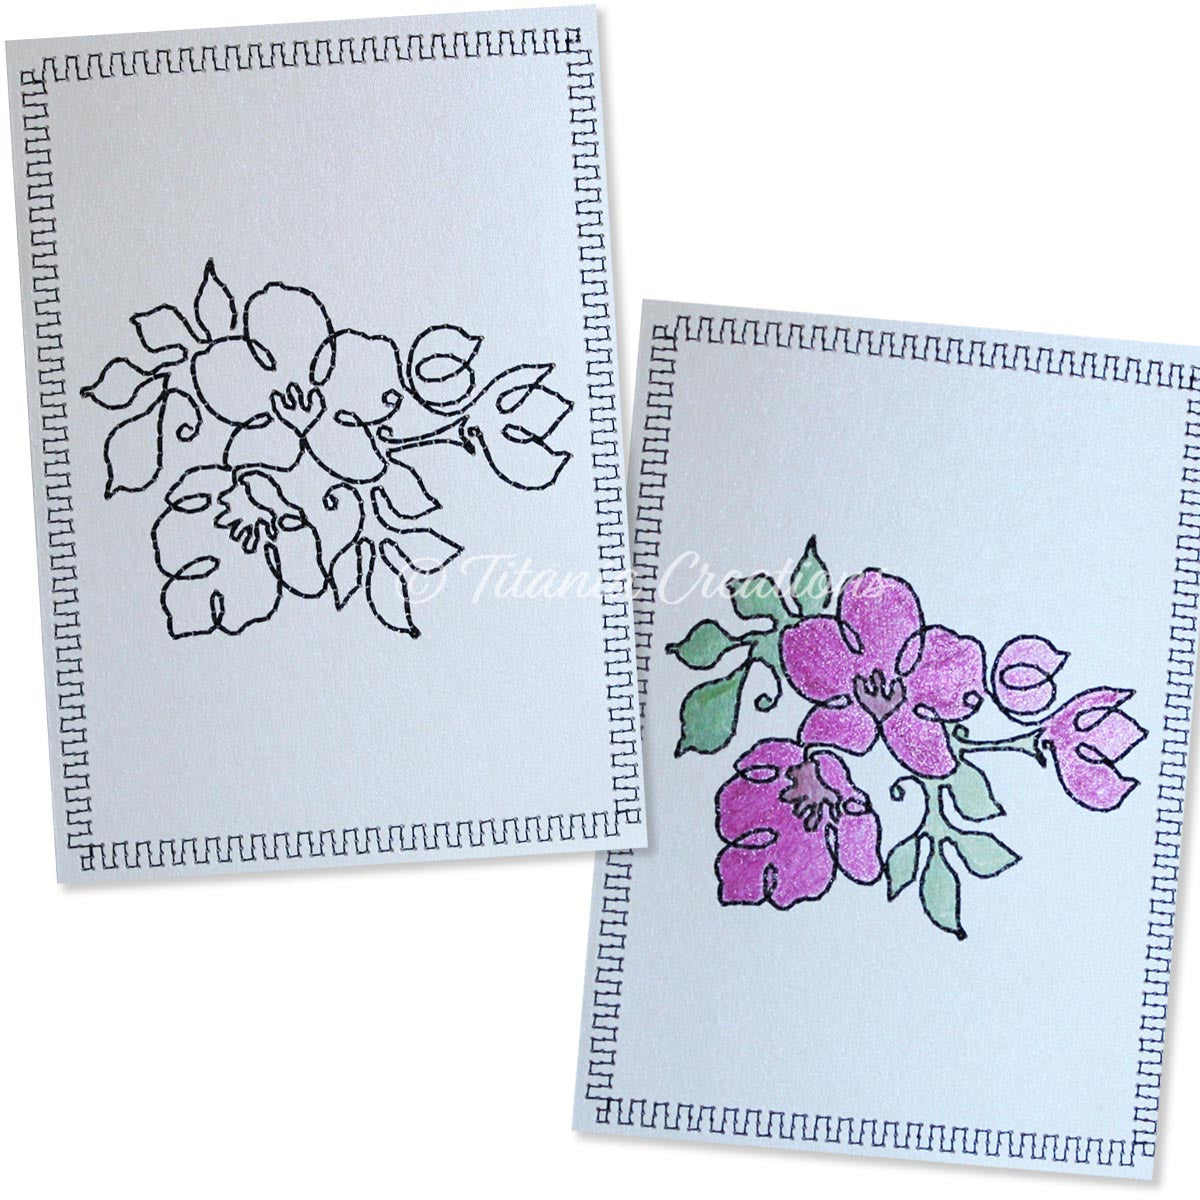 Simply Floral 07 Card Stock Design 5x7